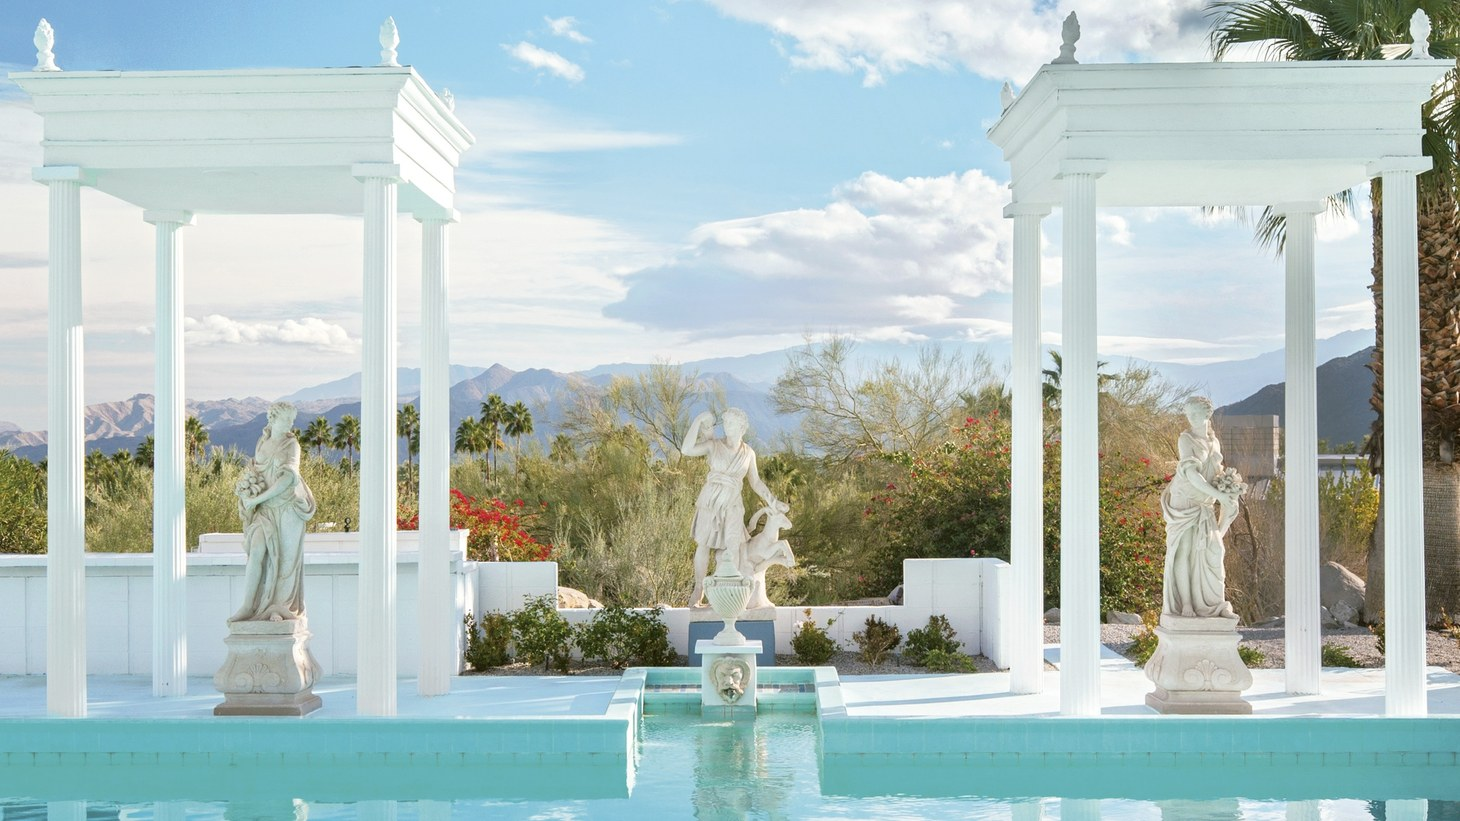 The style of the 1962 George Randolph Hearst pool in Palm Springs was influenced by the Neptune Pool at his father's legendary estate, San Simeon, and even includes statues gifted from San Simeon.